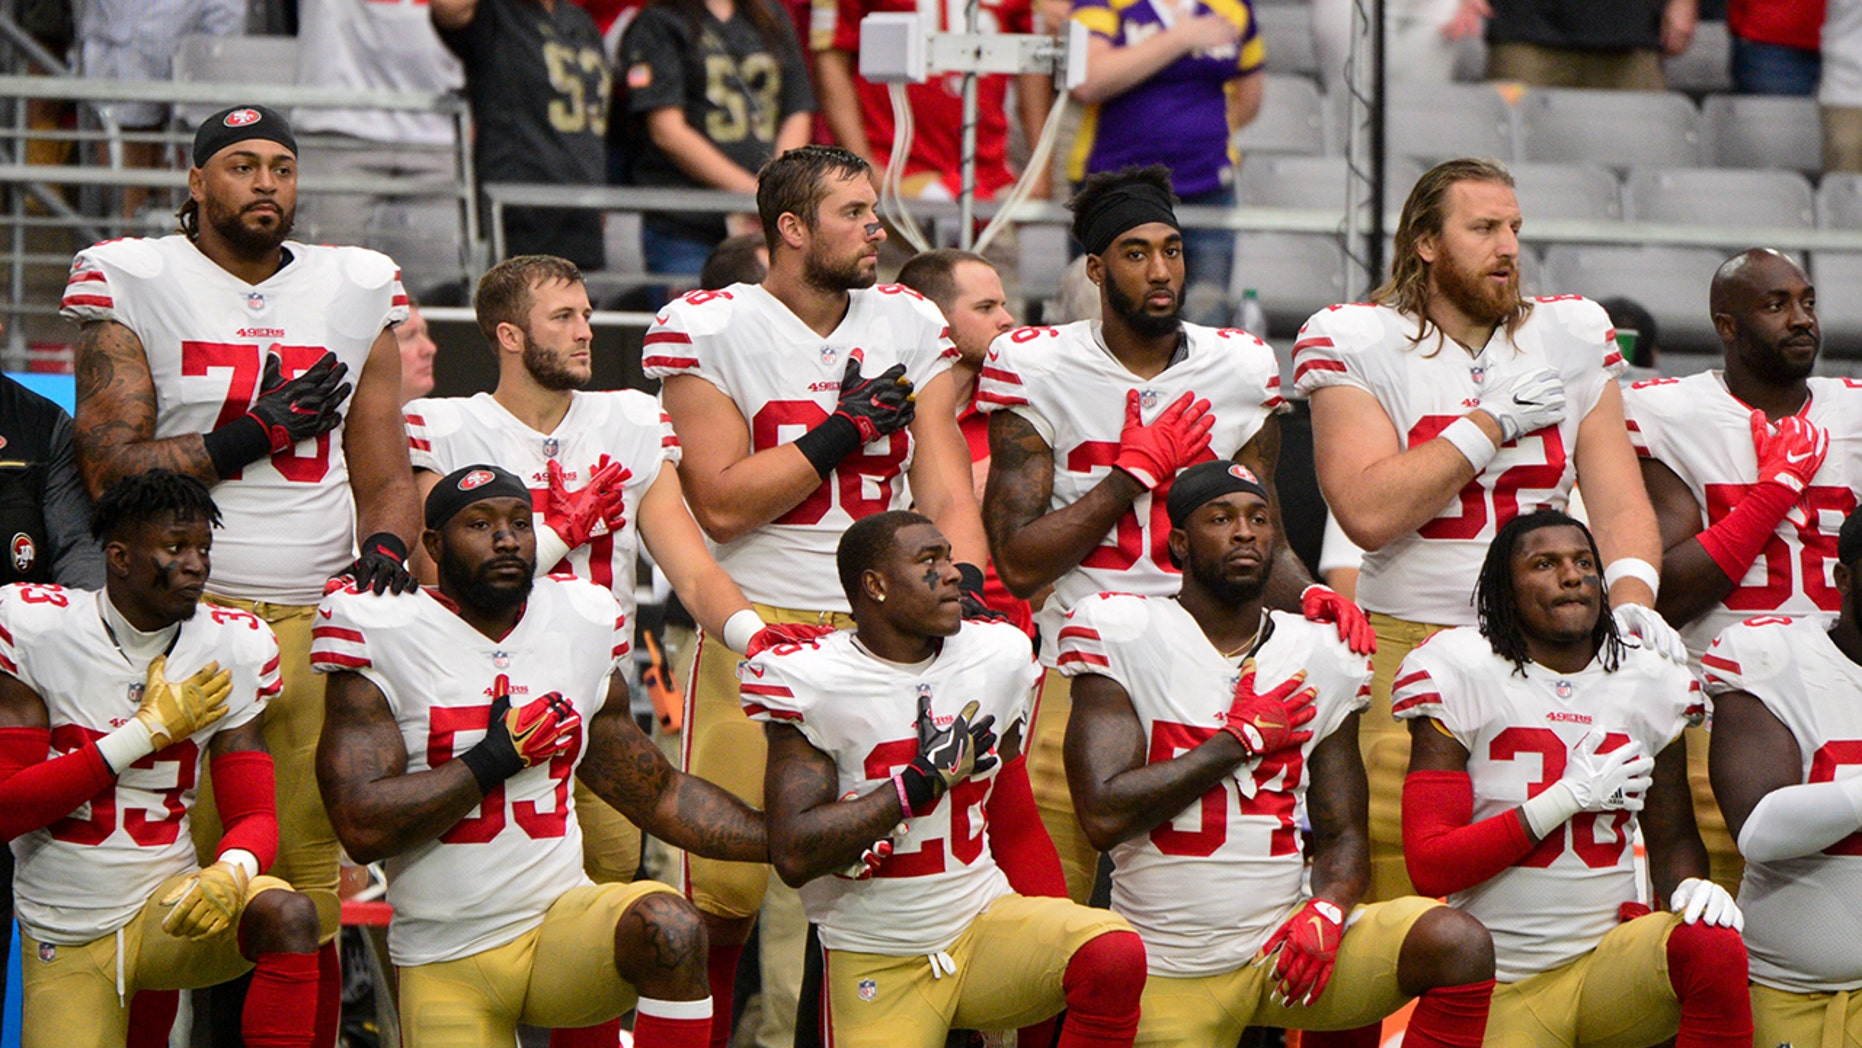 Oct 1, 2017; Glendale, AZ, USA; Members of the San Francisco 49ers kneel during the National Anthem prior to a game against the Arizona Cardinals at University of Phoenix Stadium. Mandatory Credit: Matt Kartozian-USA TODAY Sports - 10321248